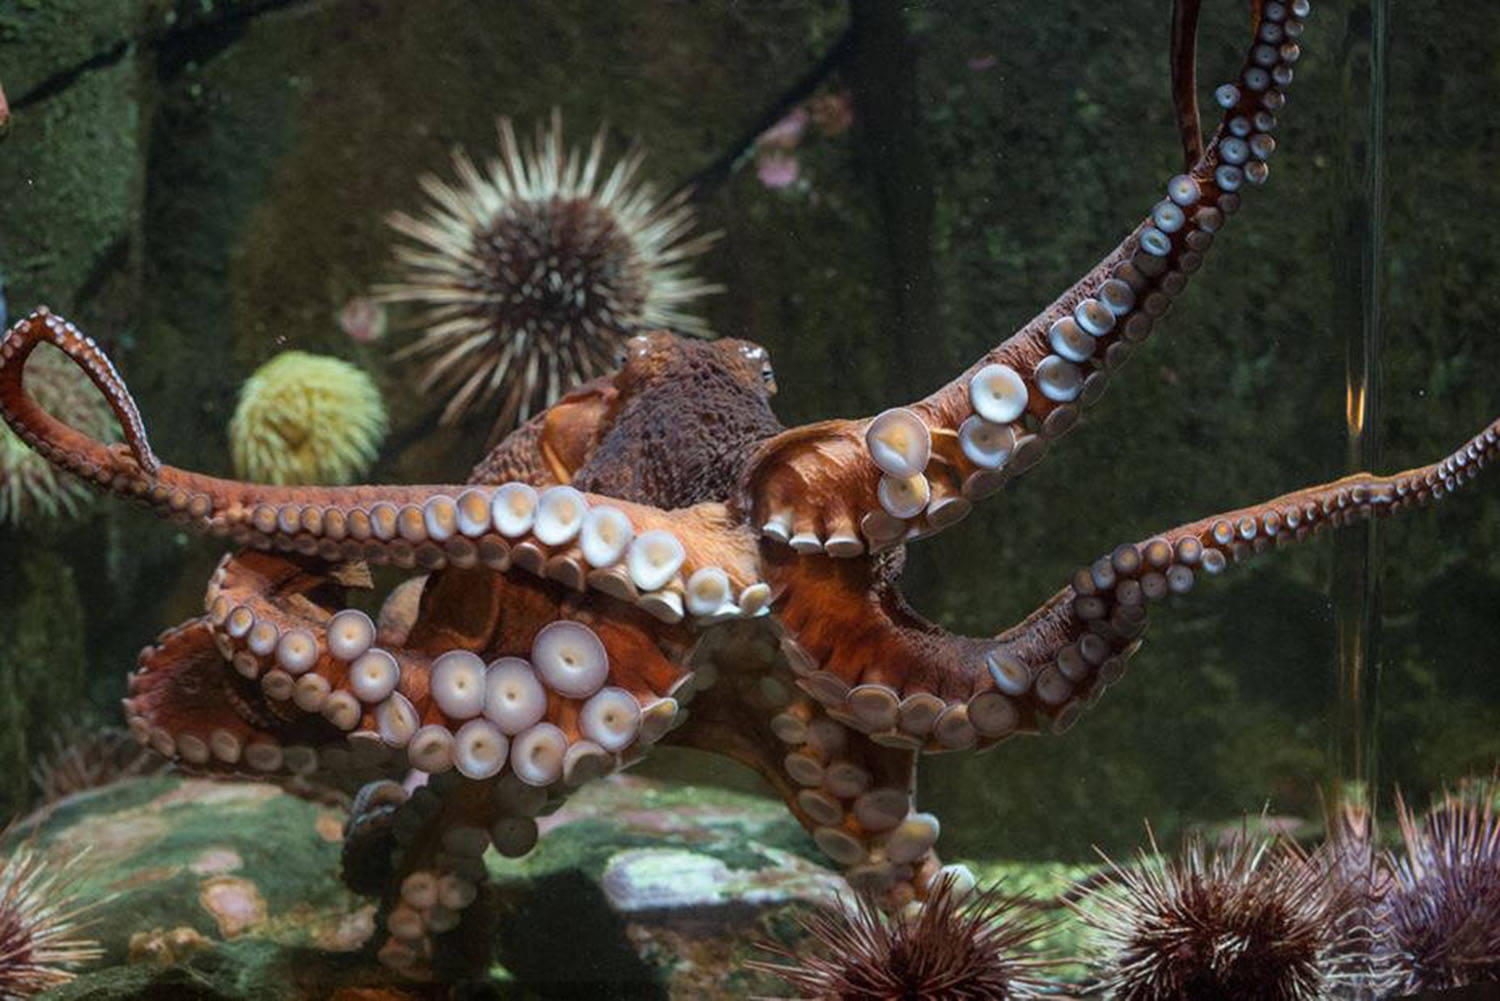 The Shaw Centre for the Salish Sea named its new octopus Henry in honour of provincial health office Dr. Bonnie Henry. Henry was released back into the sea on Dec. 16. (Photo by Bob Orchard/Shaw Centre for the Salish Sea)